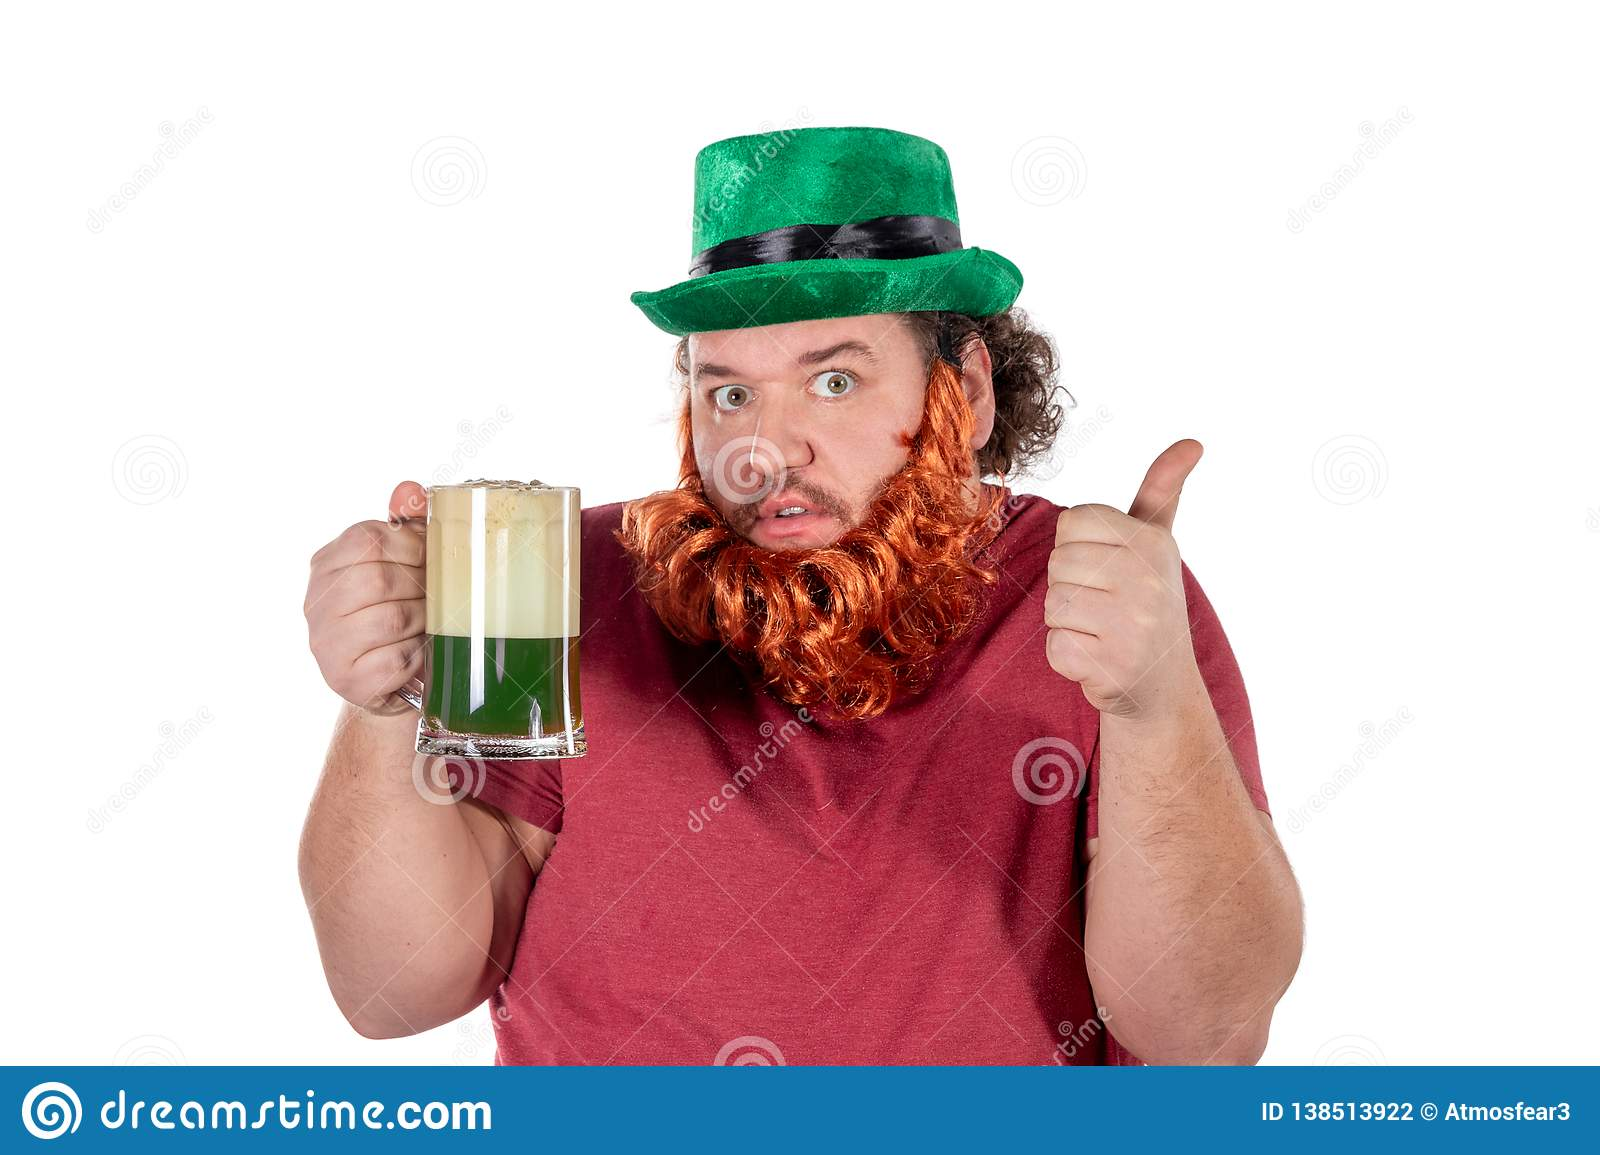 Patricks day party. Portrait of funny fat man holding glass of beer on St Patrick